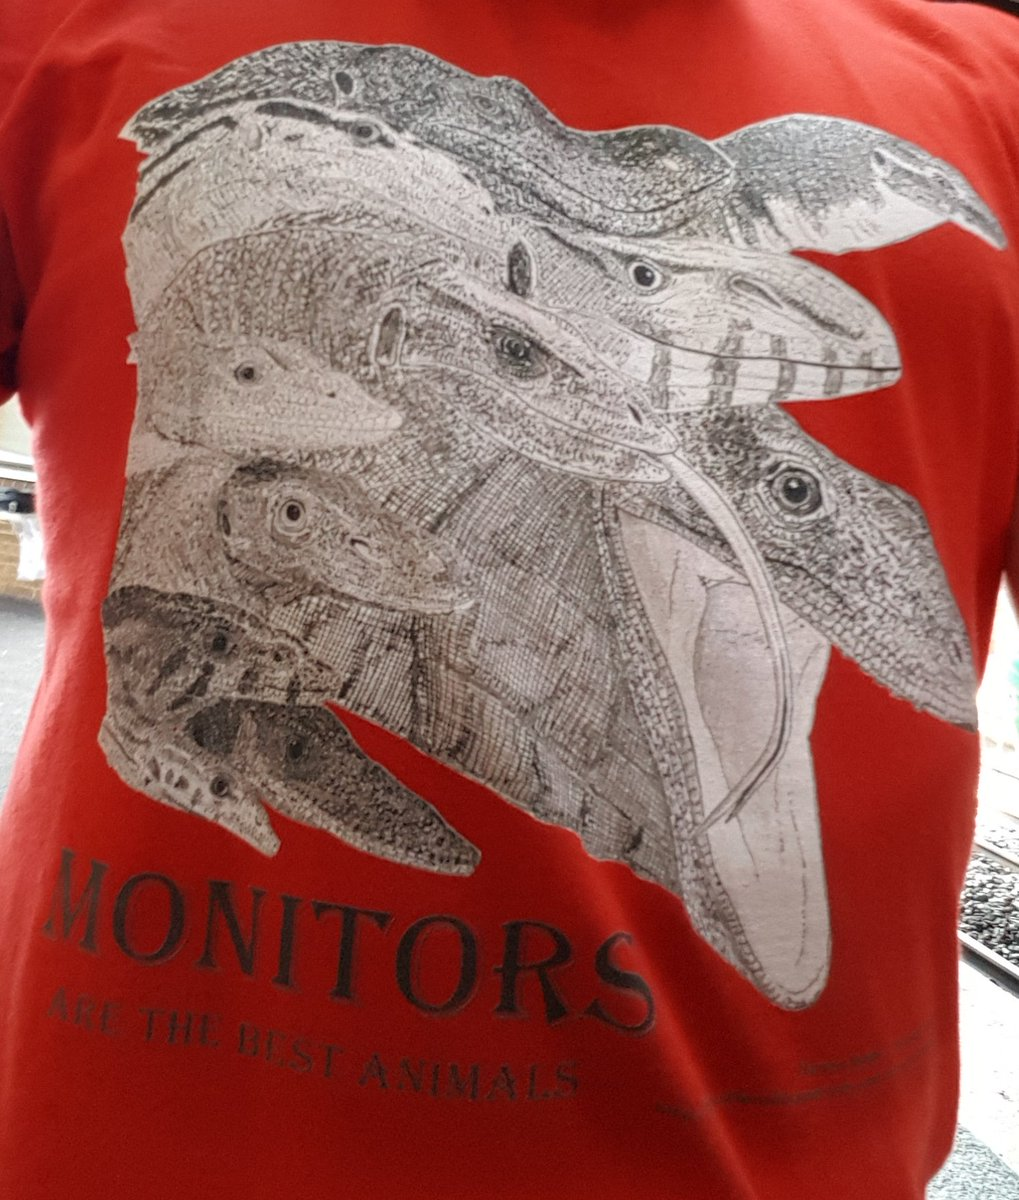 The t-shirt I&#39;m wearing today :) I eventually plan to do a colour version with far bolder outlines. #reptiles <br>http://pic.twitter.com/6Kon08bzJS